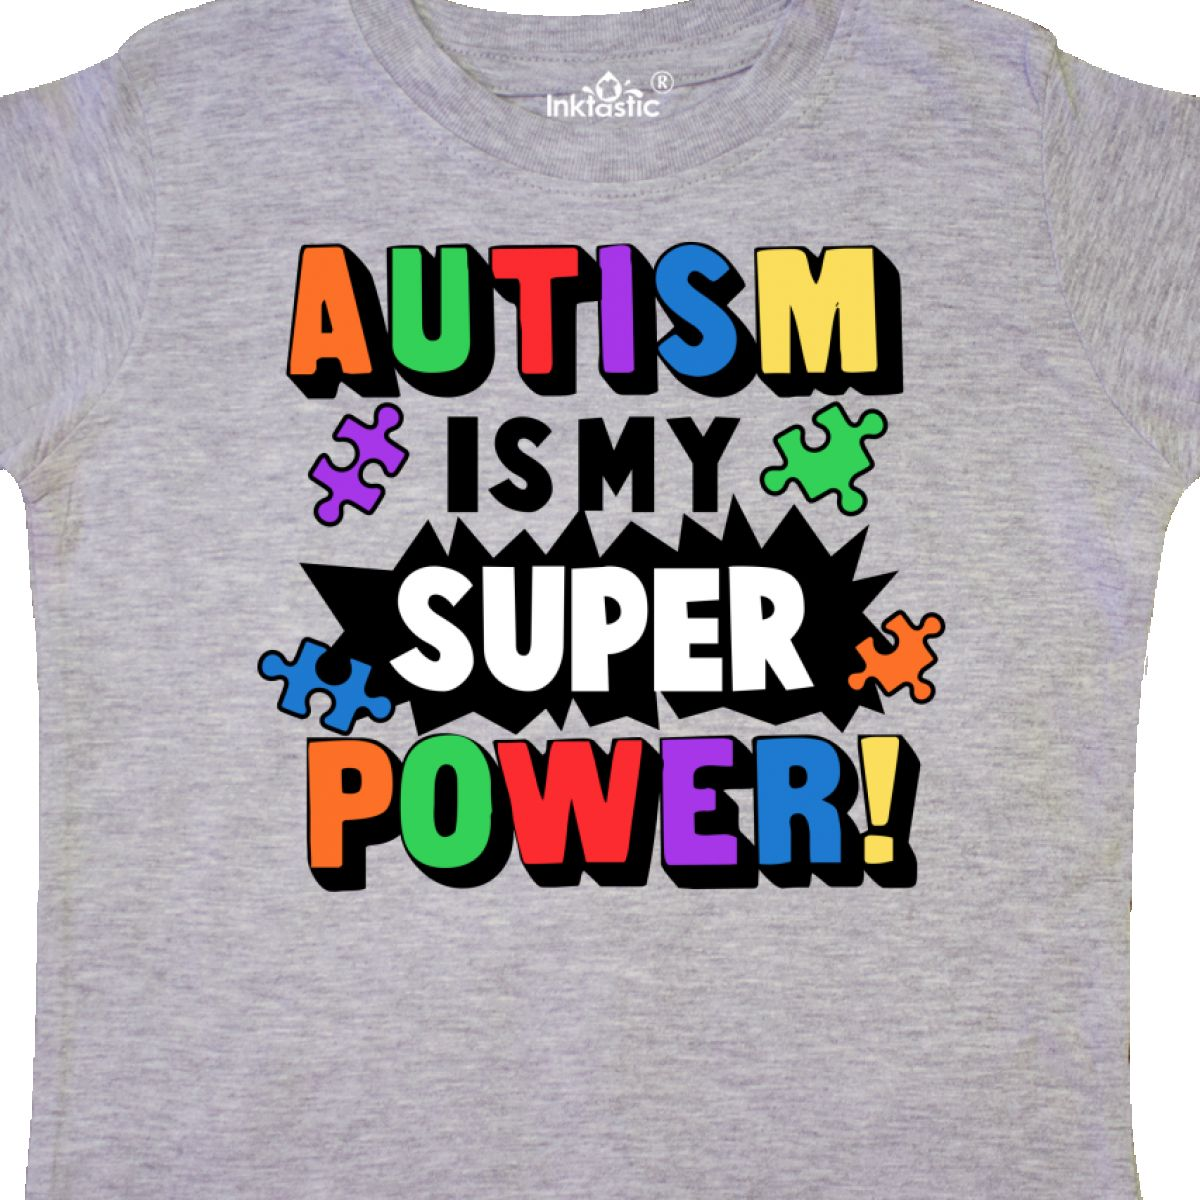 Inktastic-Autism-Is-My-Super-Power-With-Puzzle-Pieces-Toddler-T-Shirt-Awareness thumbnail 10